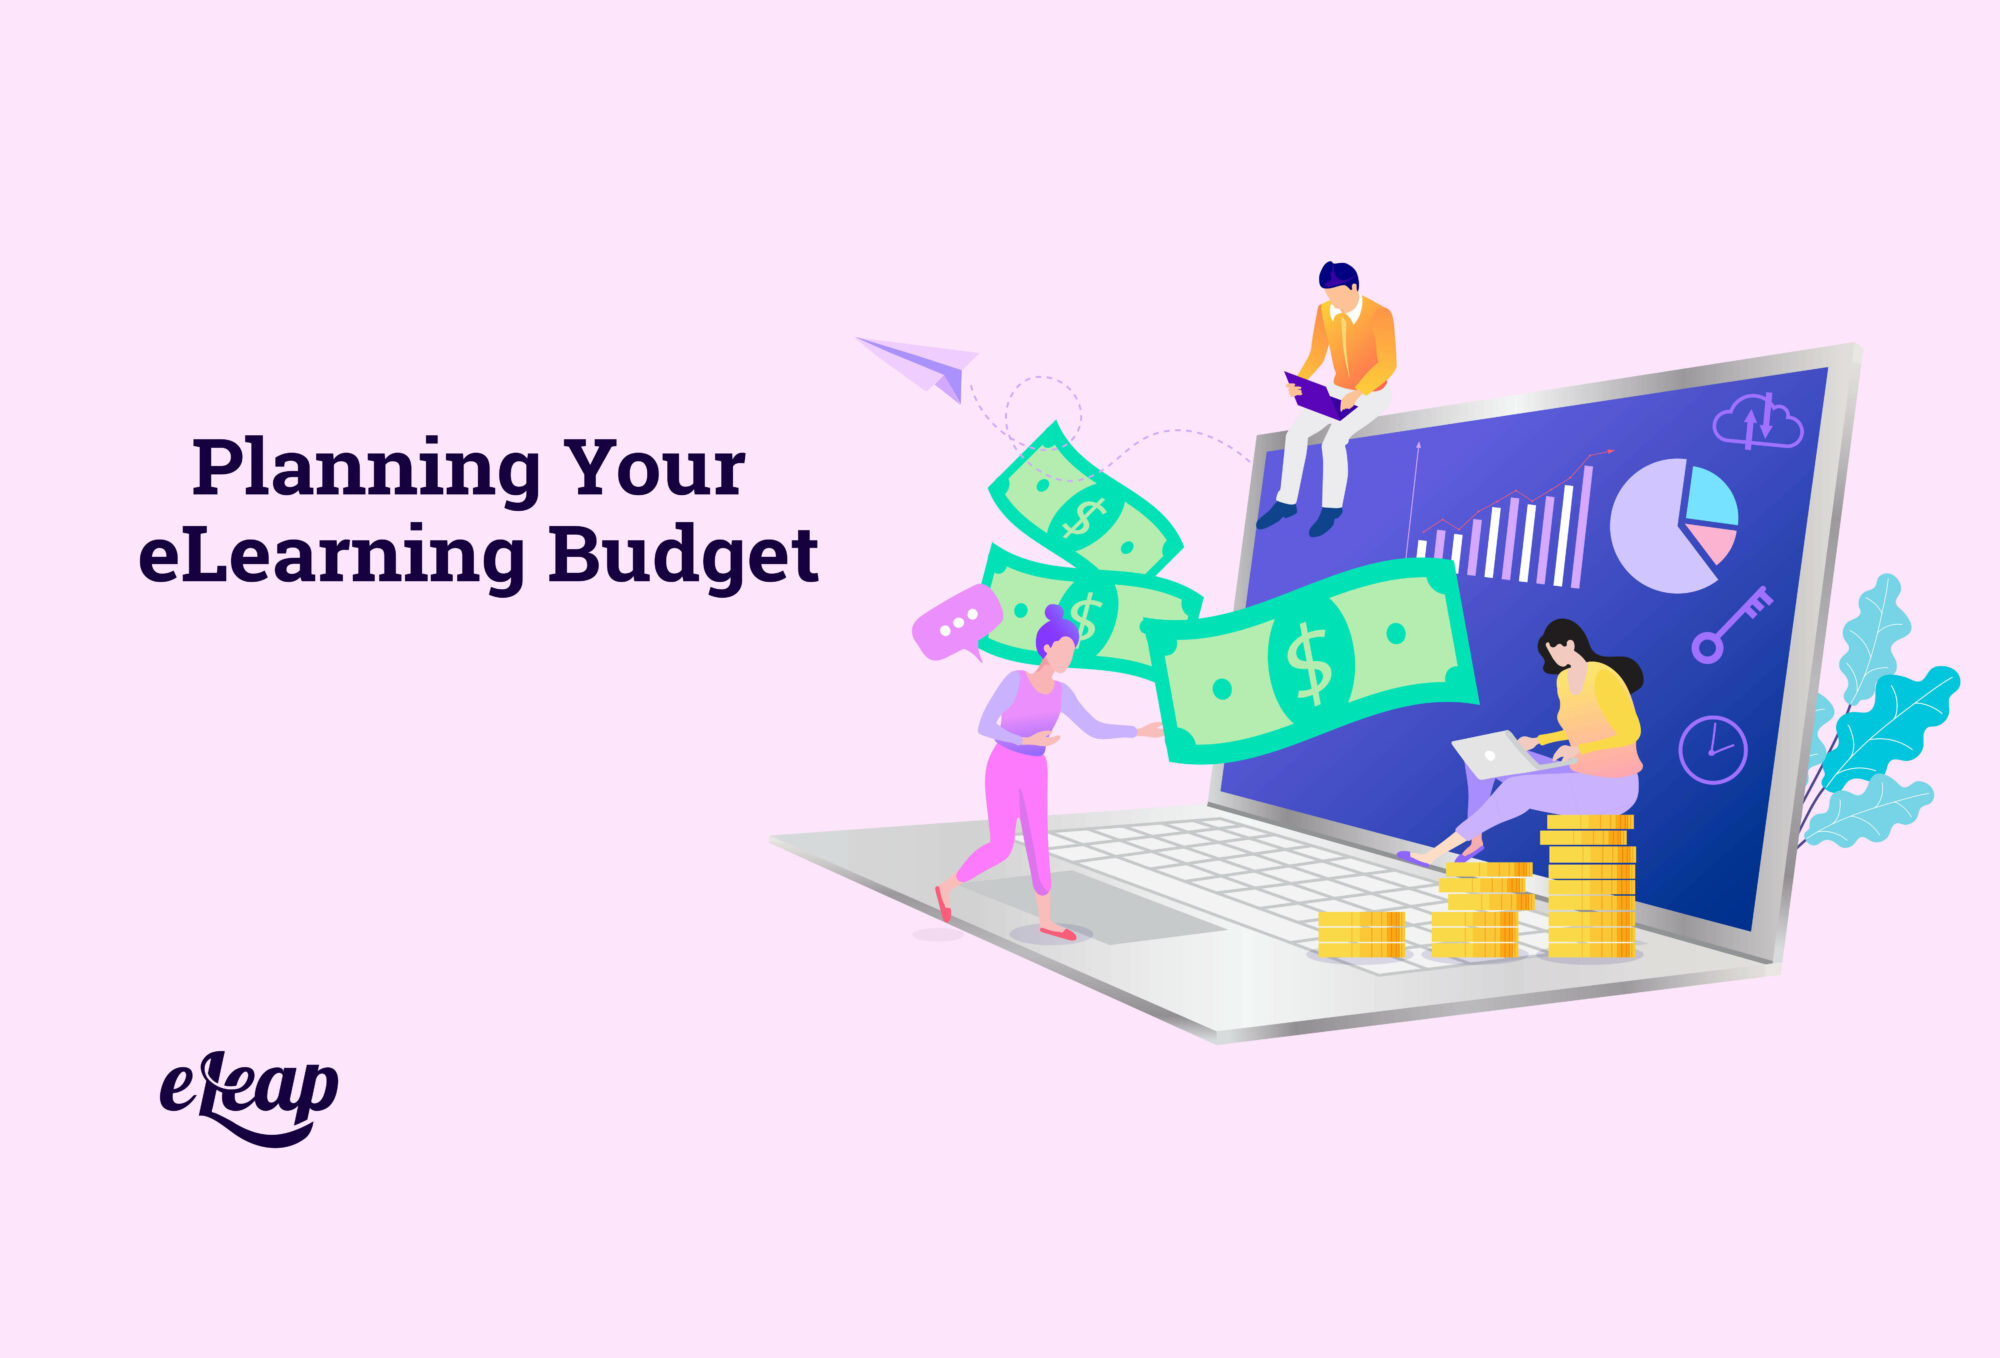 Planning Your eLearning Budget